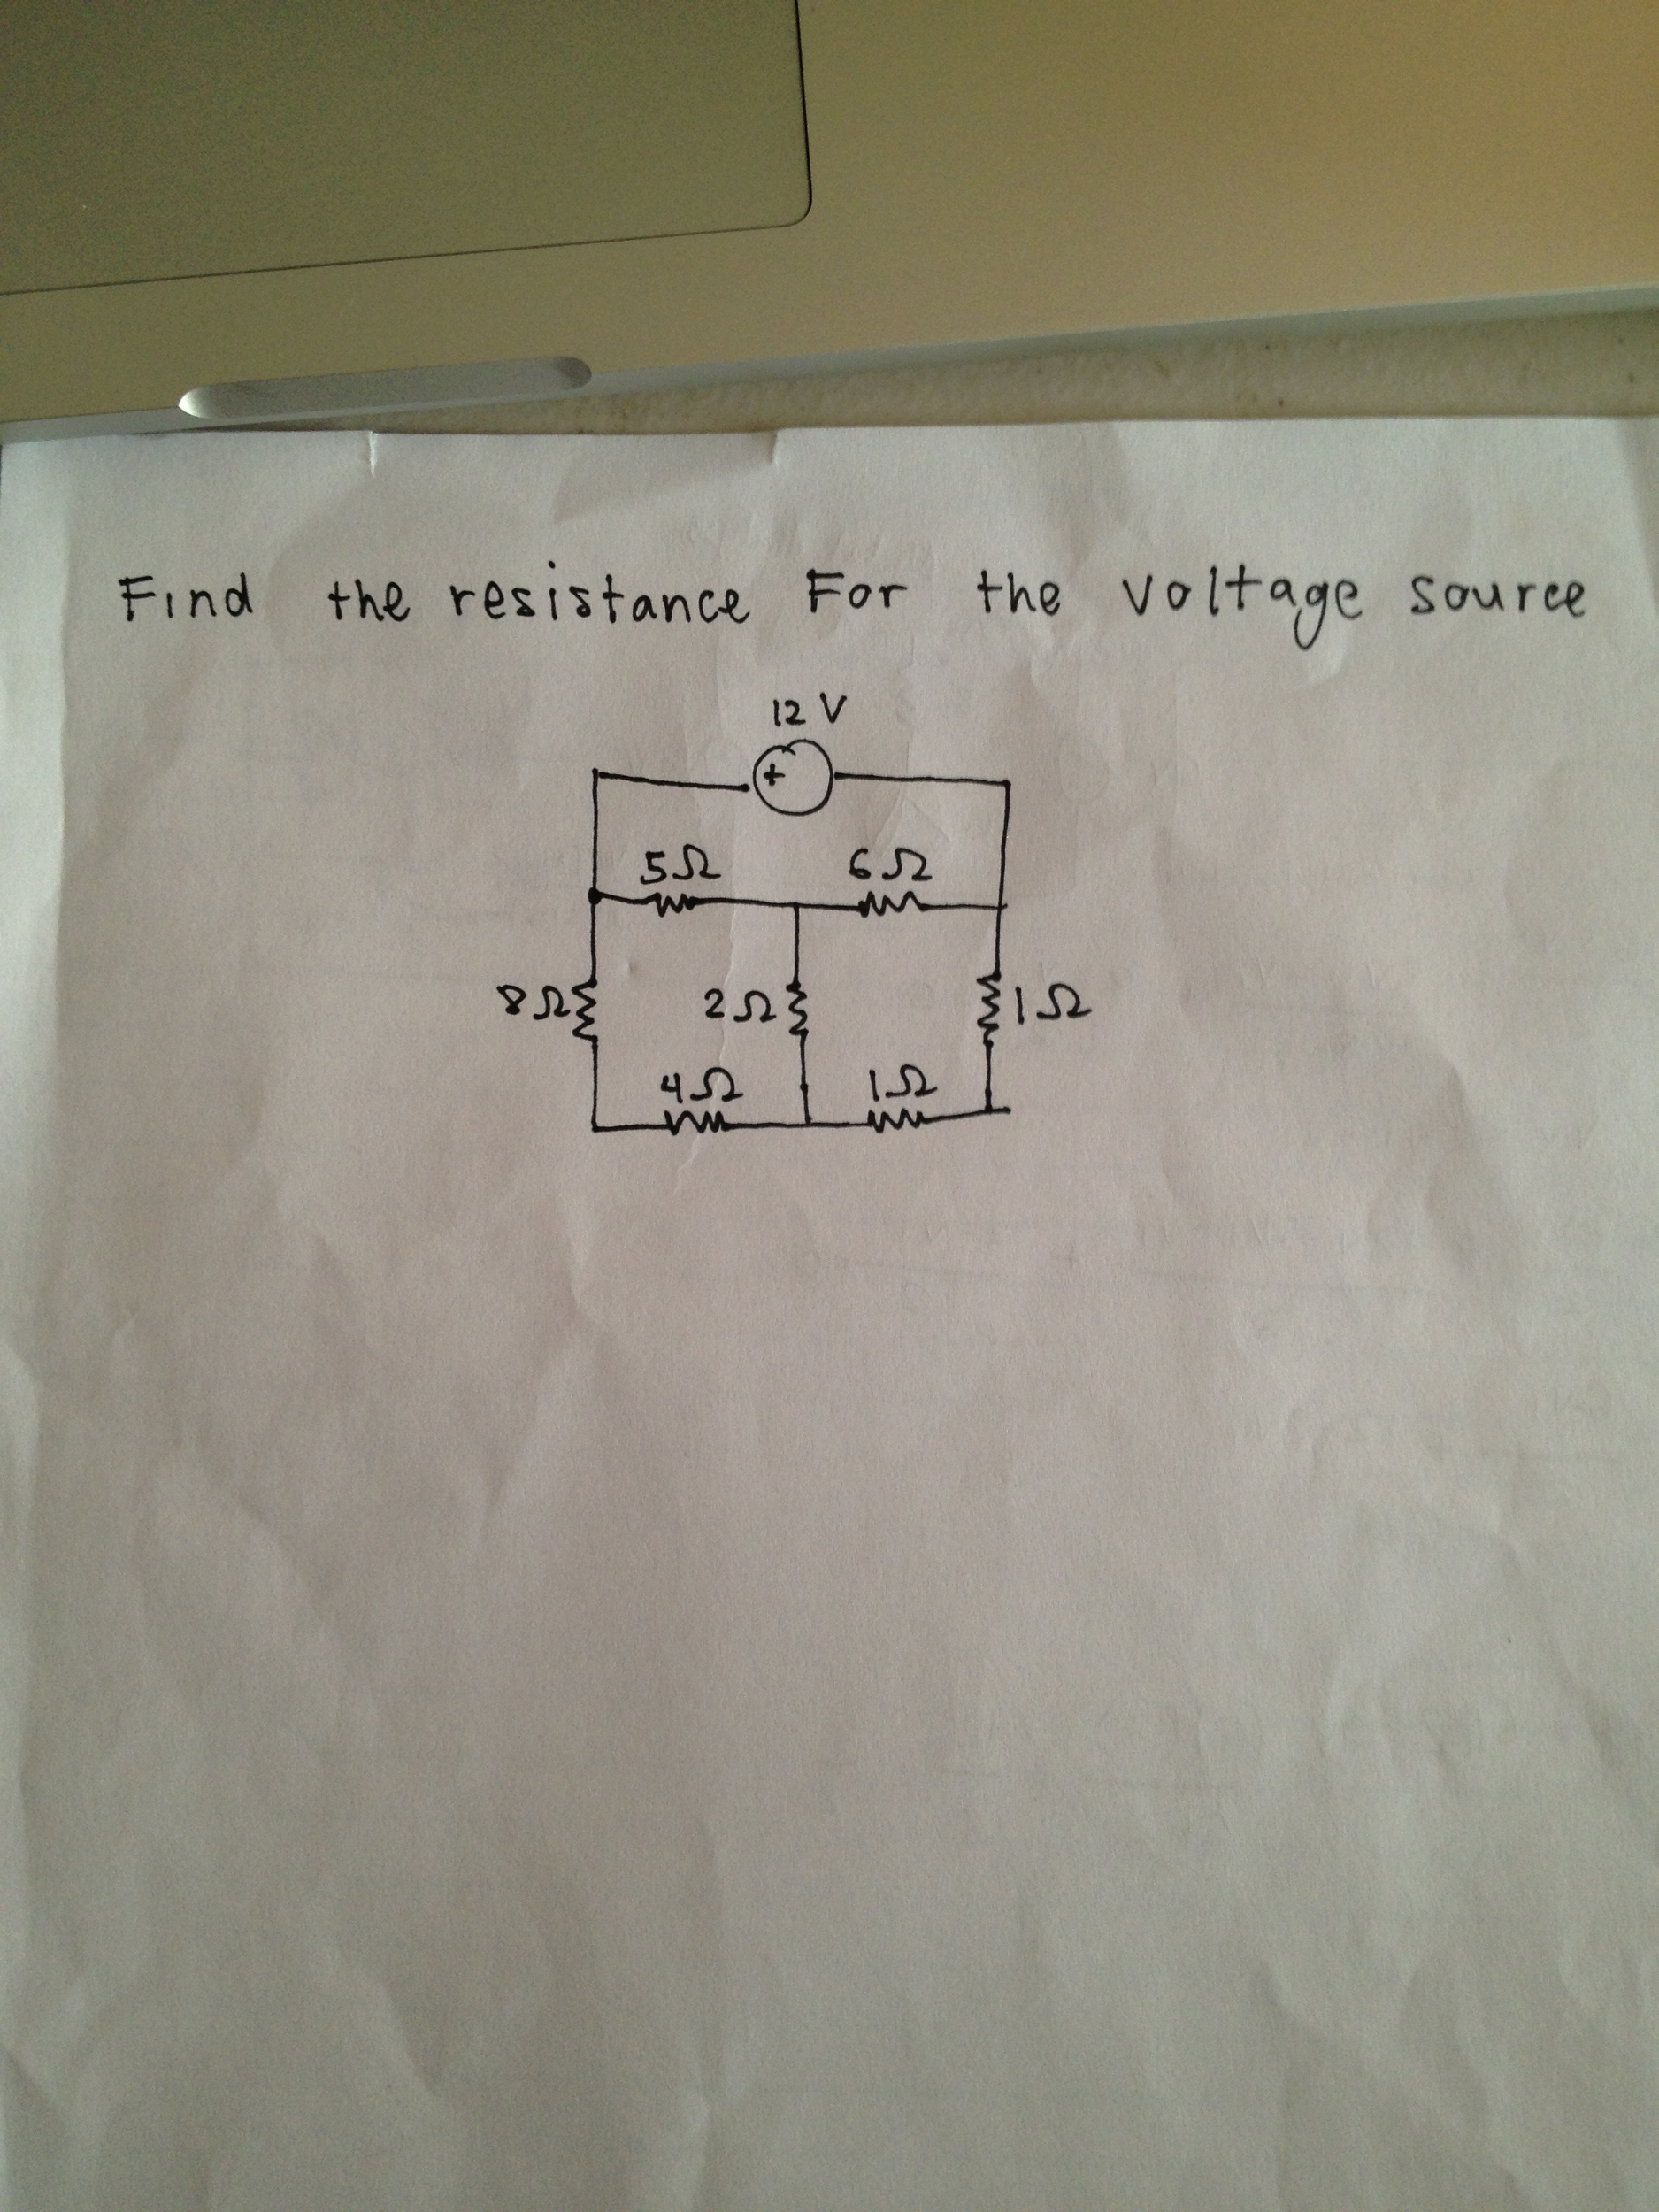 Find the resistance for the voltage source